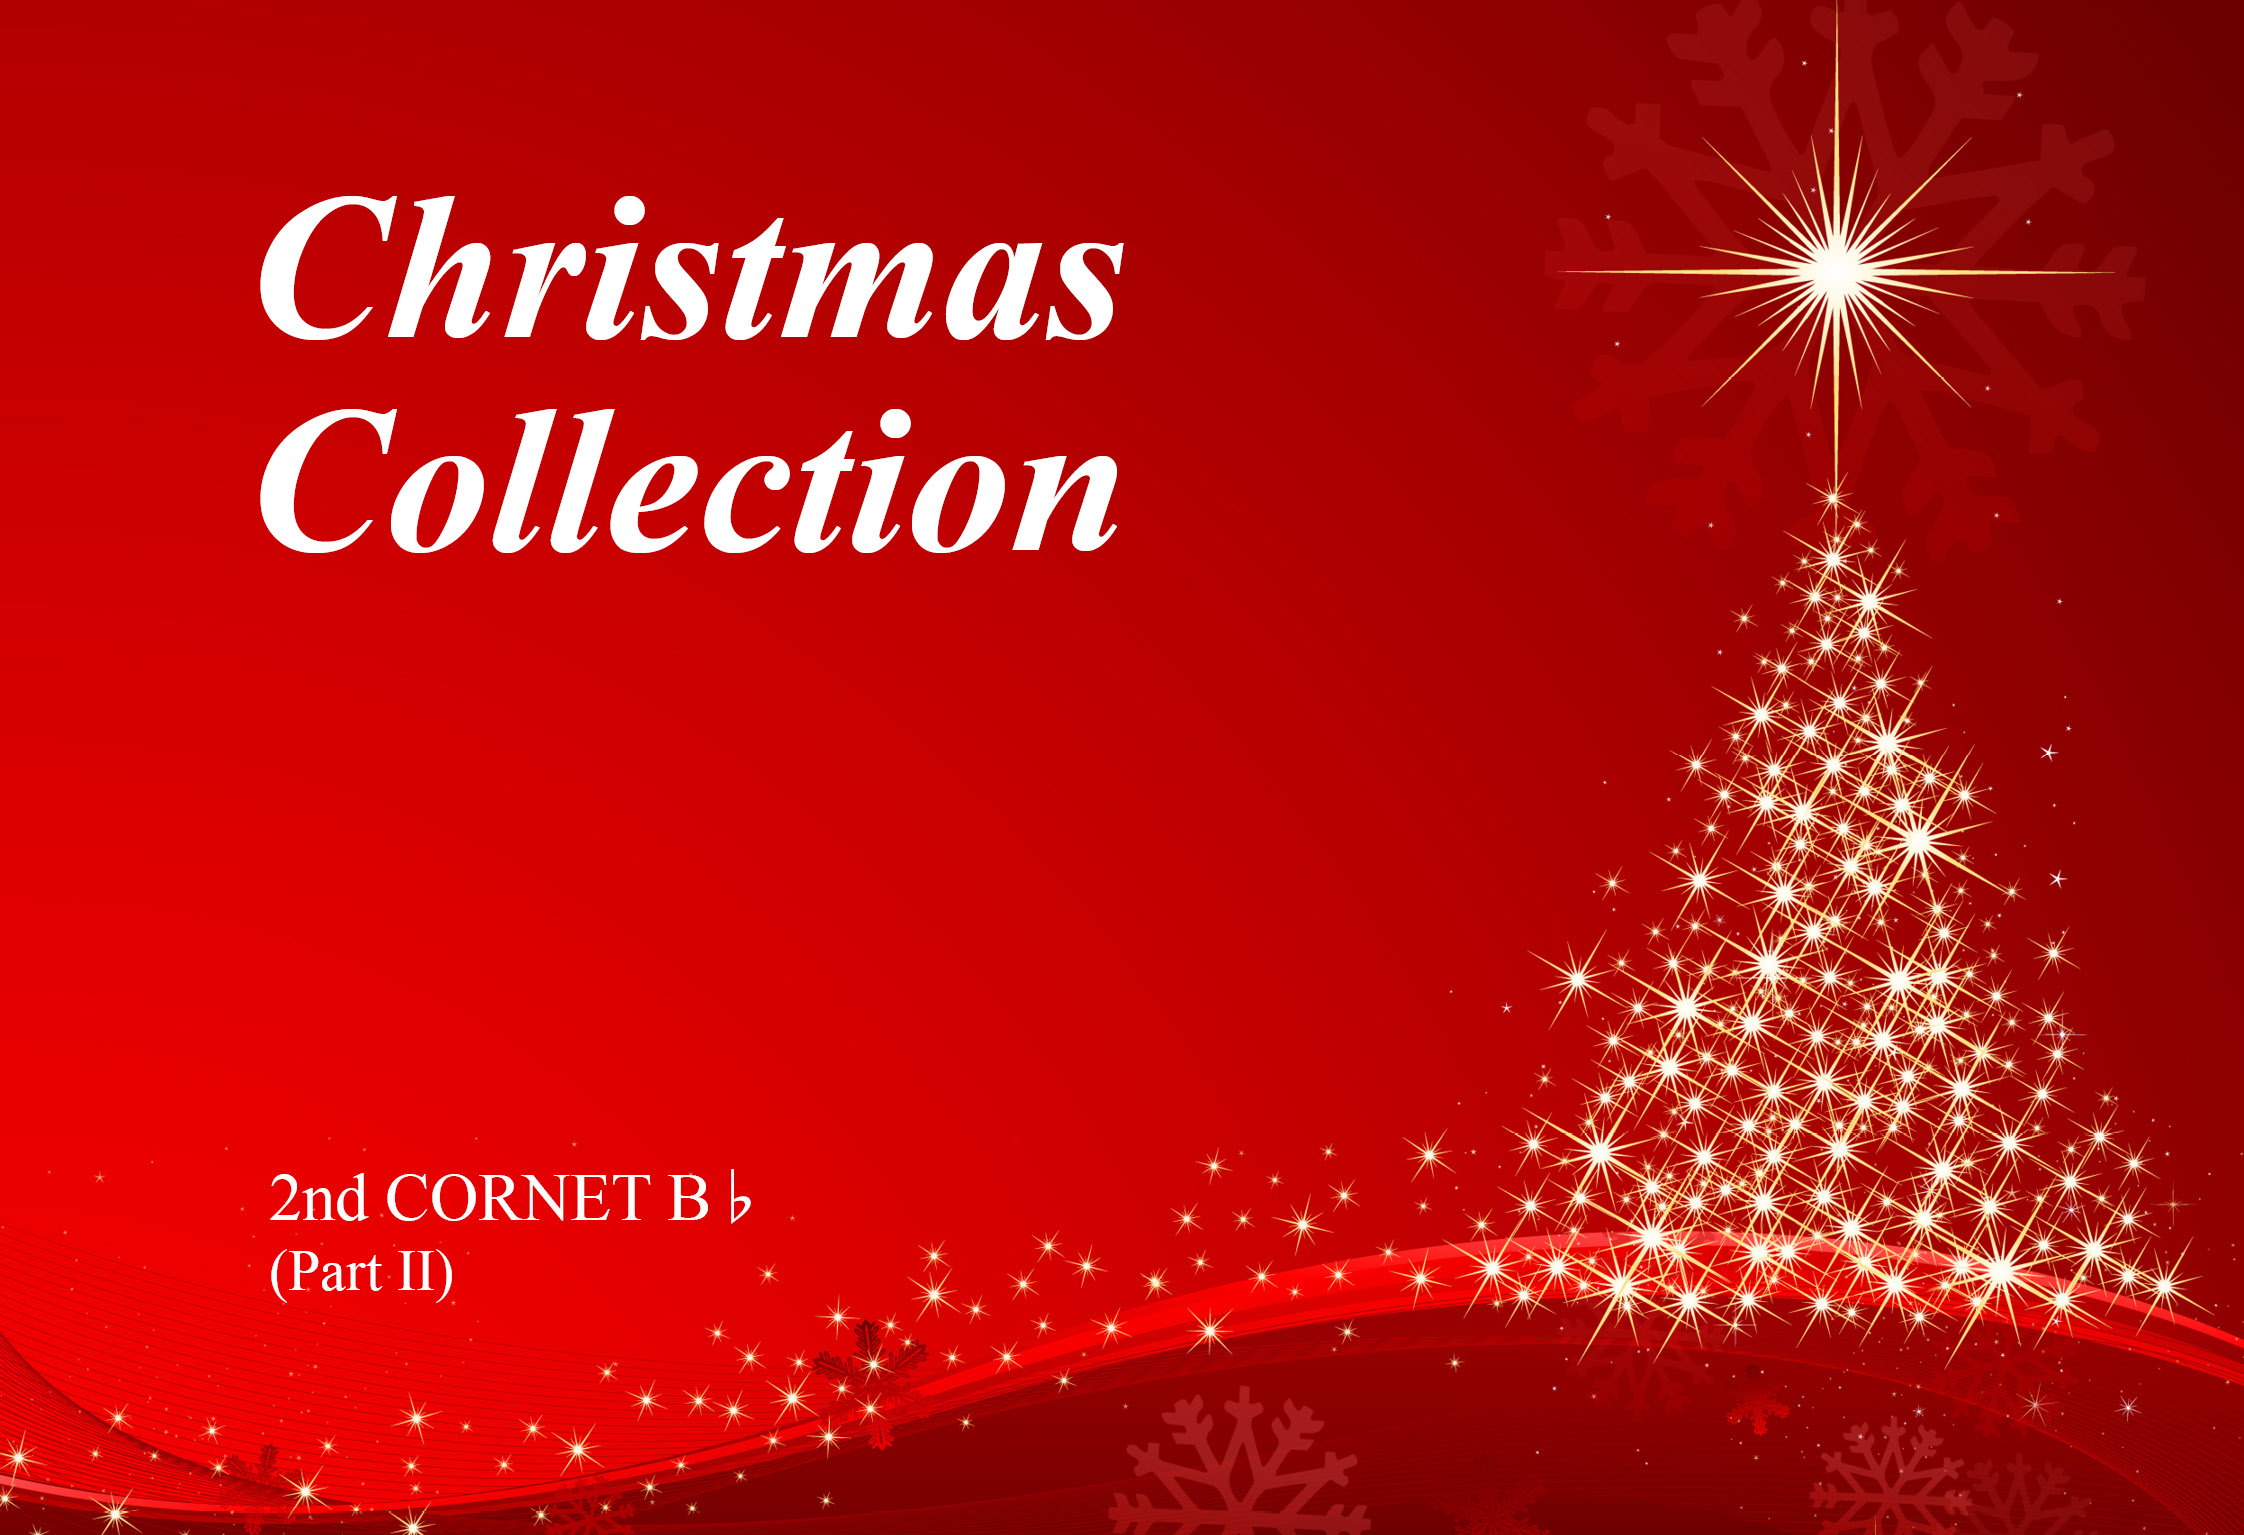 Christmas Collection - 2nd Cornet Bb part II - Large Print A4